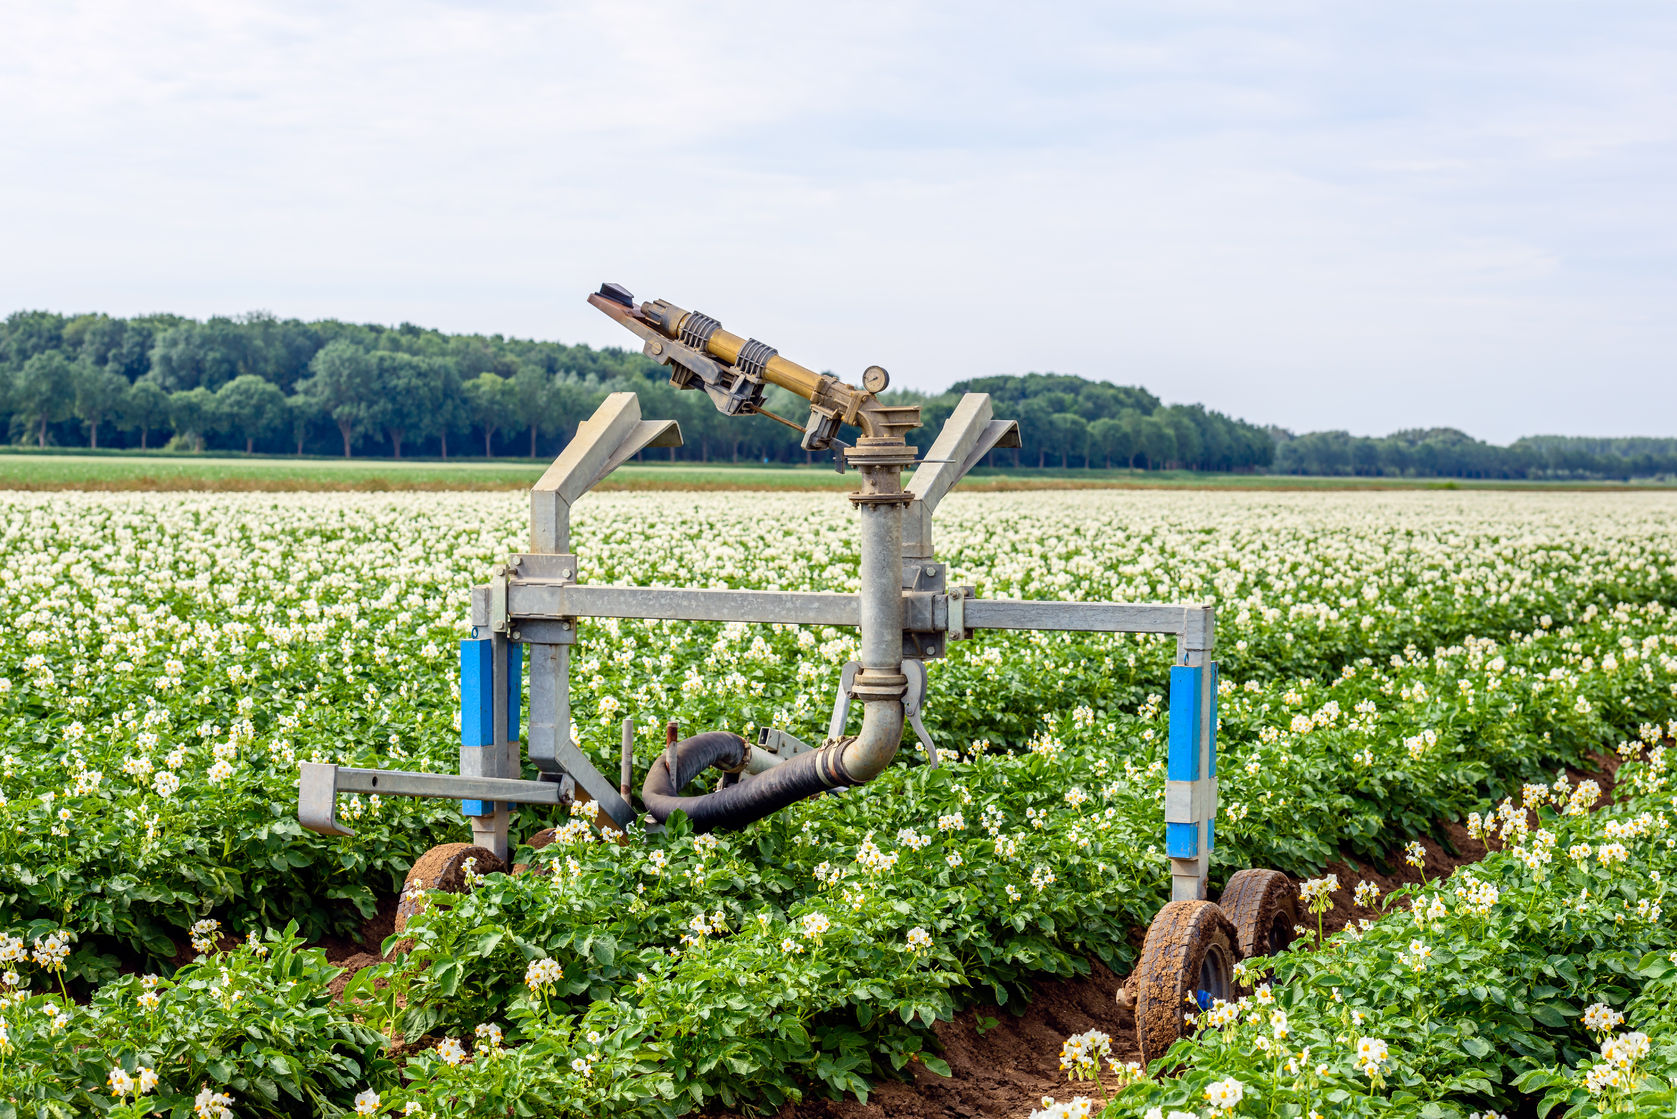 68569125 - rollaway automatic watering gun and a long water hose in a large field with white and yellow flowering potato plants on a warm day in the dutch summer season.